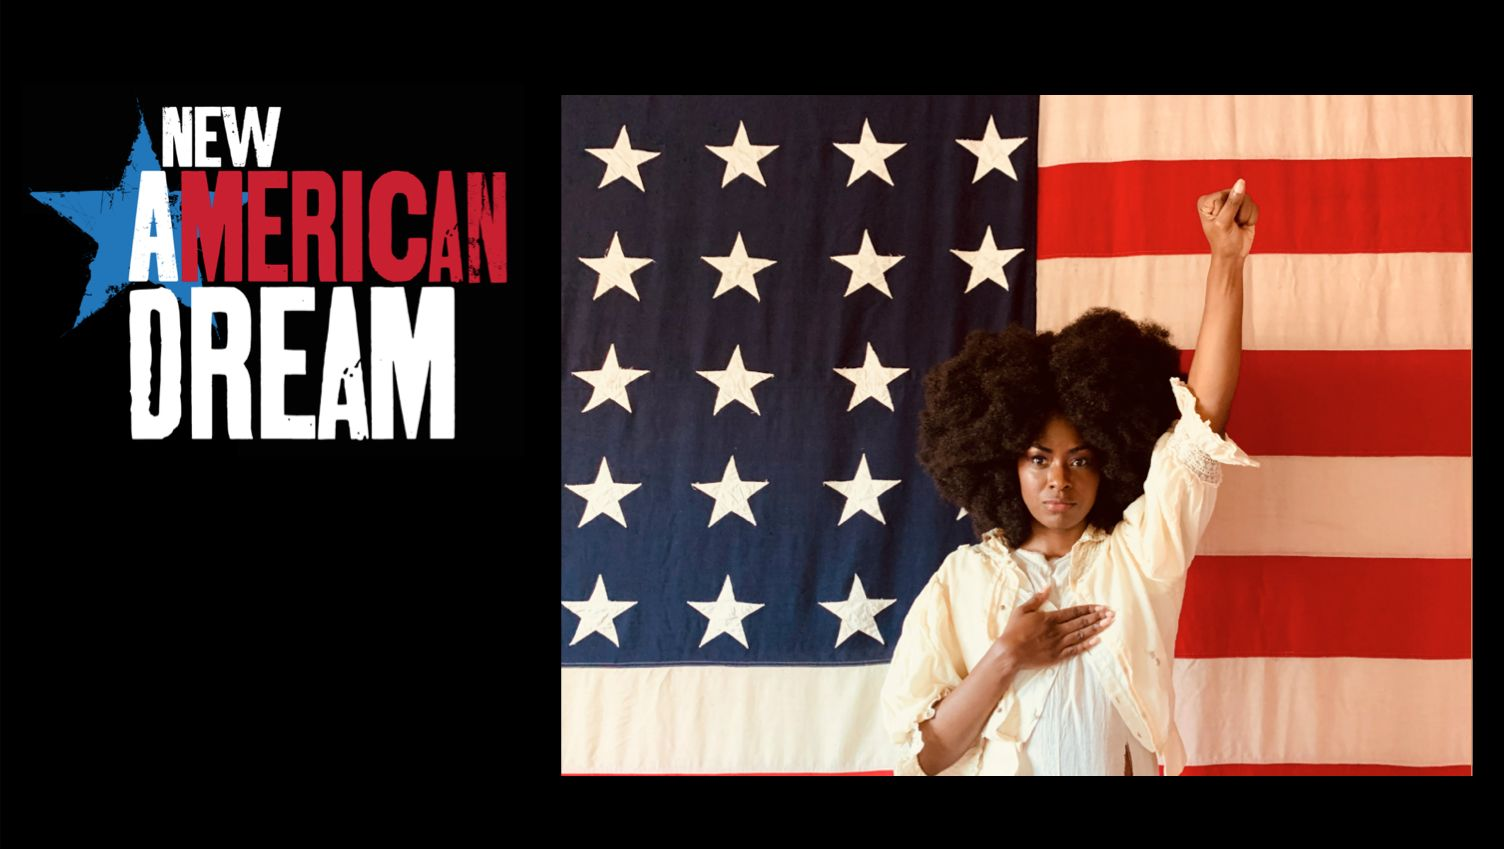 A black woman with Afro stands in front of large American flag background with her fist raised in front of an American Flag and raises her left arm and puts right hand on chest